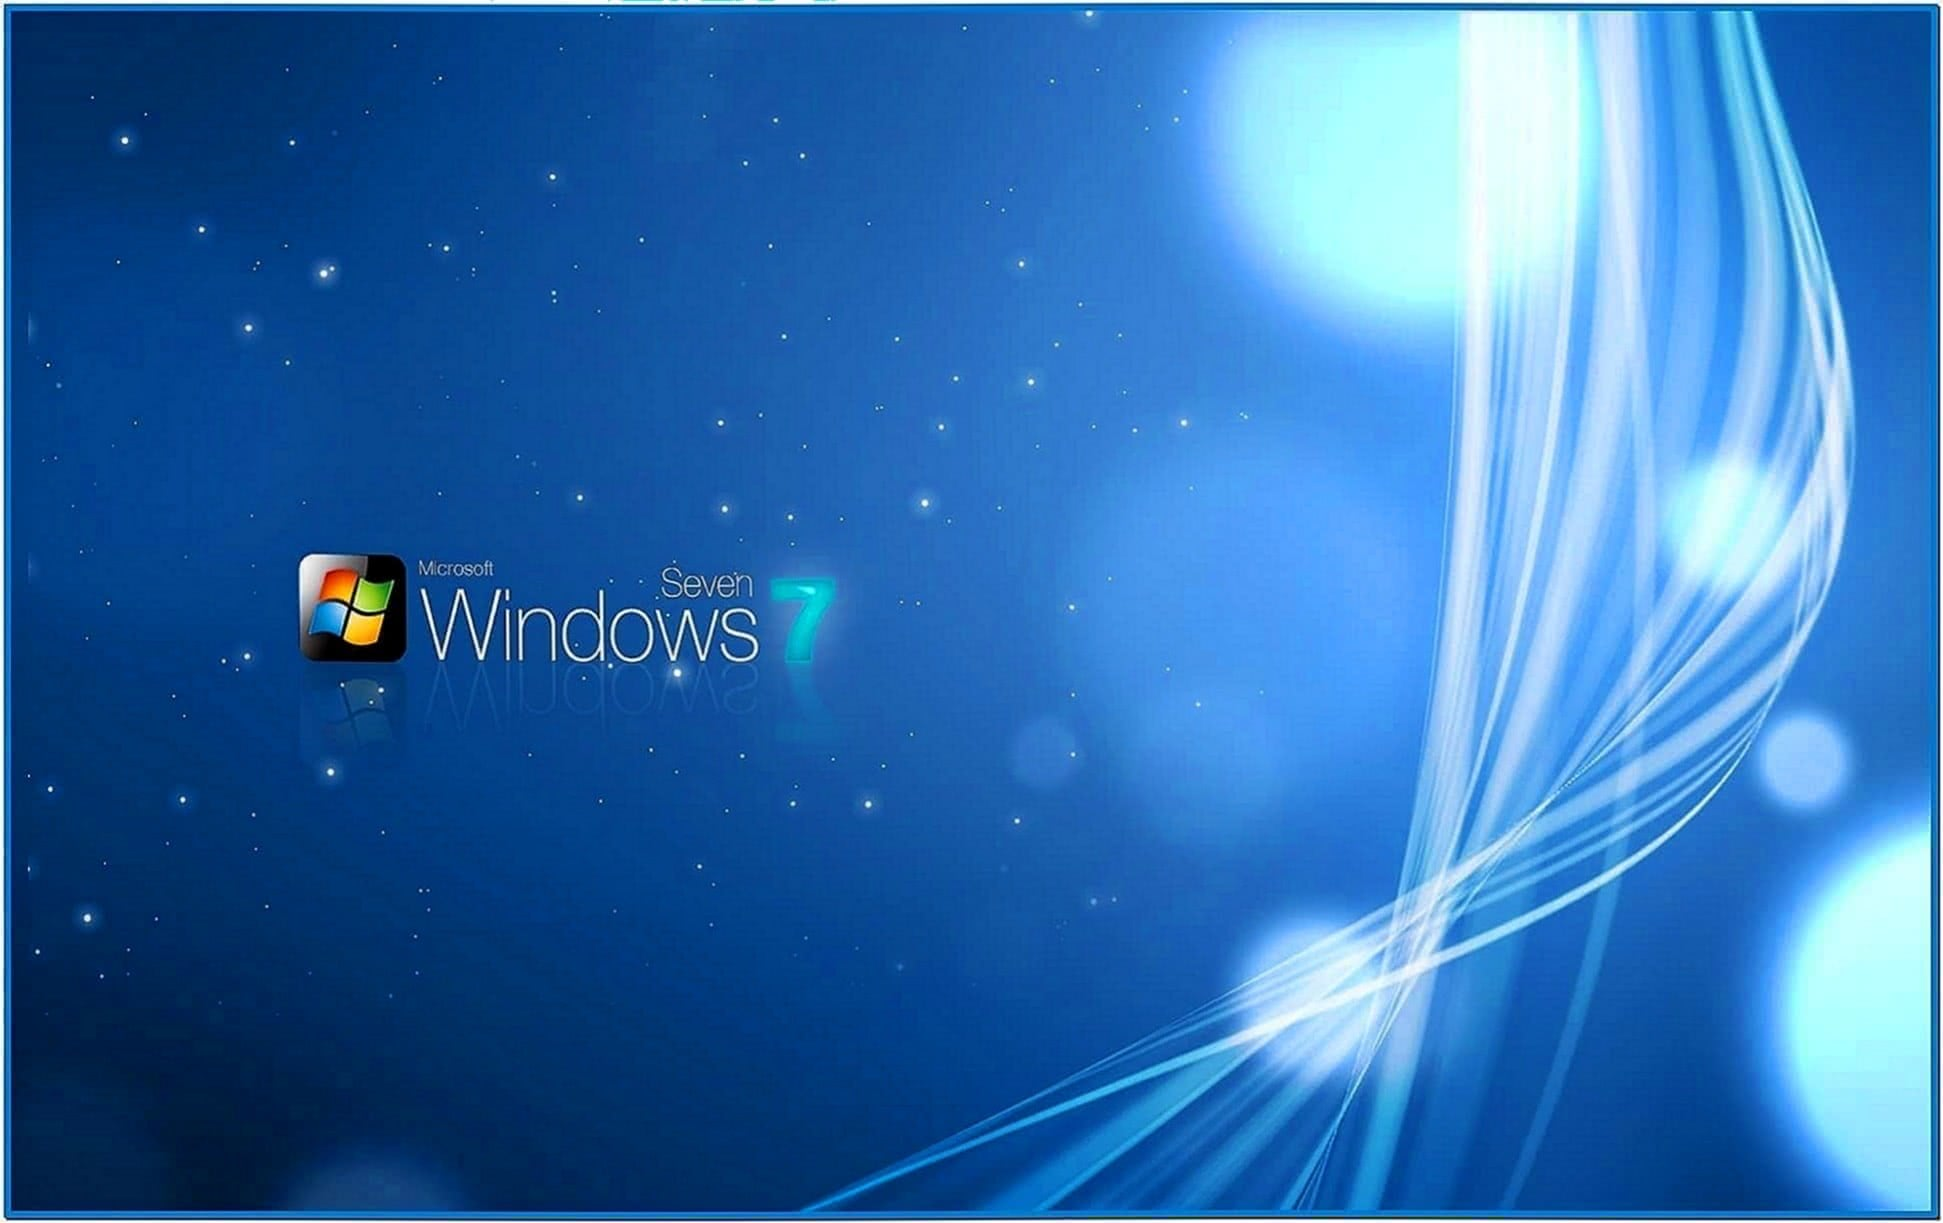 Space Screensaver Windows 7 64bit